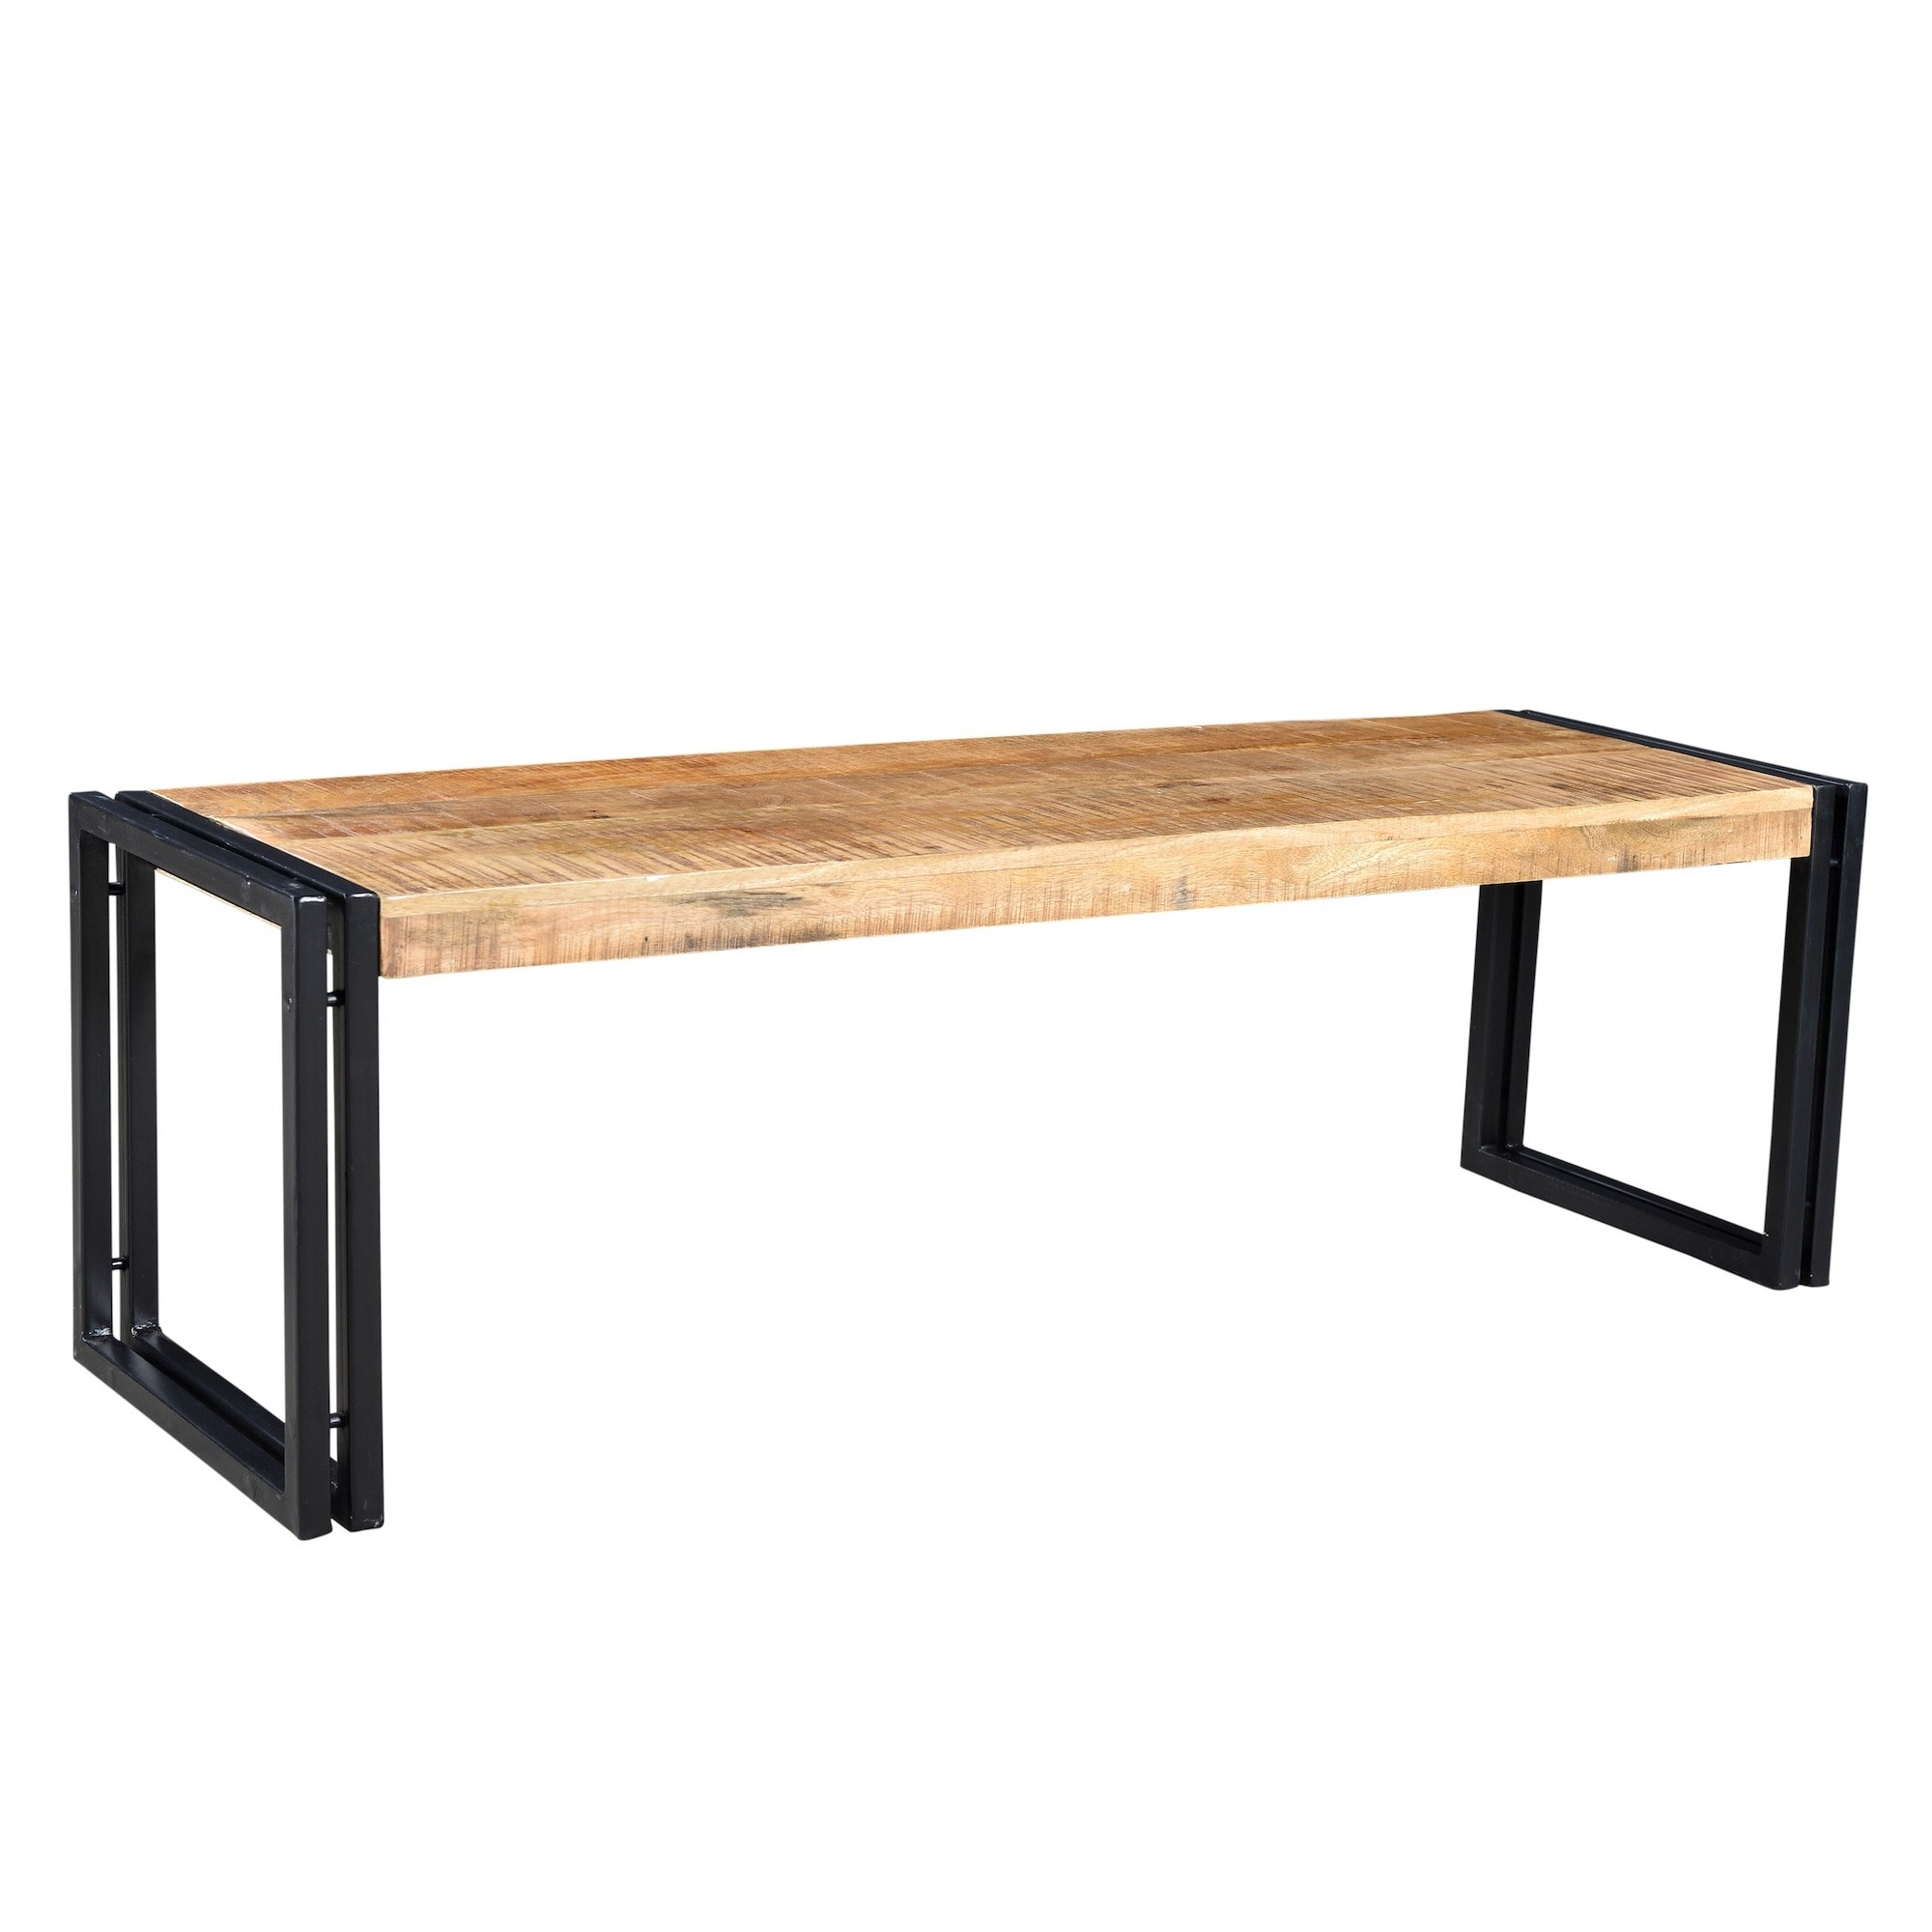 Timbergirl Handmade Reclaimed Wood and Metal Bench (India...